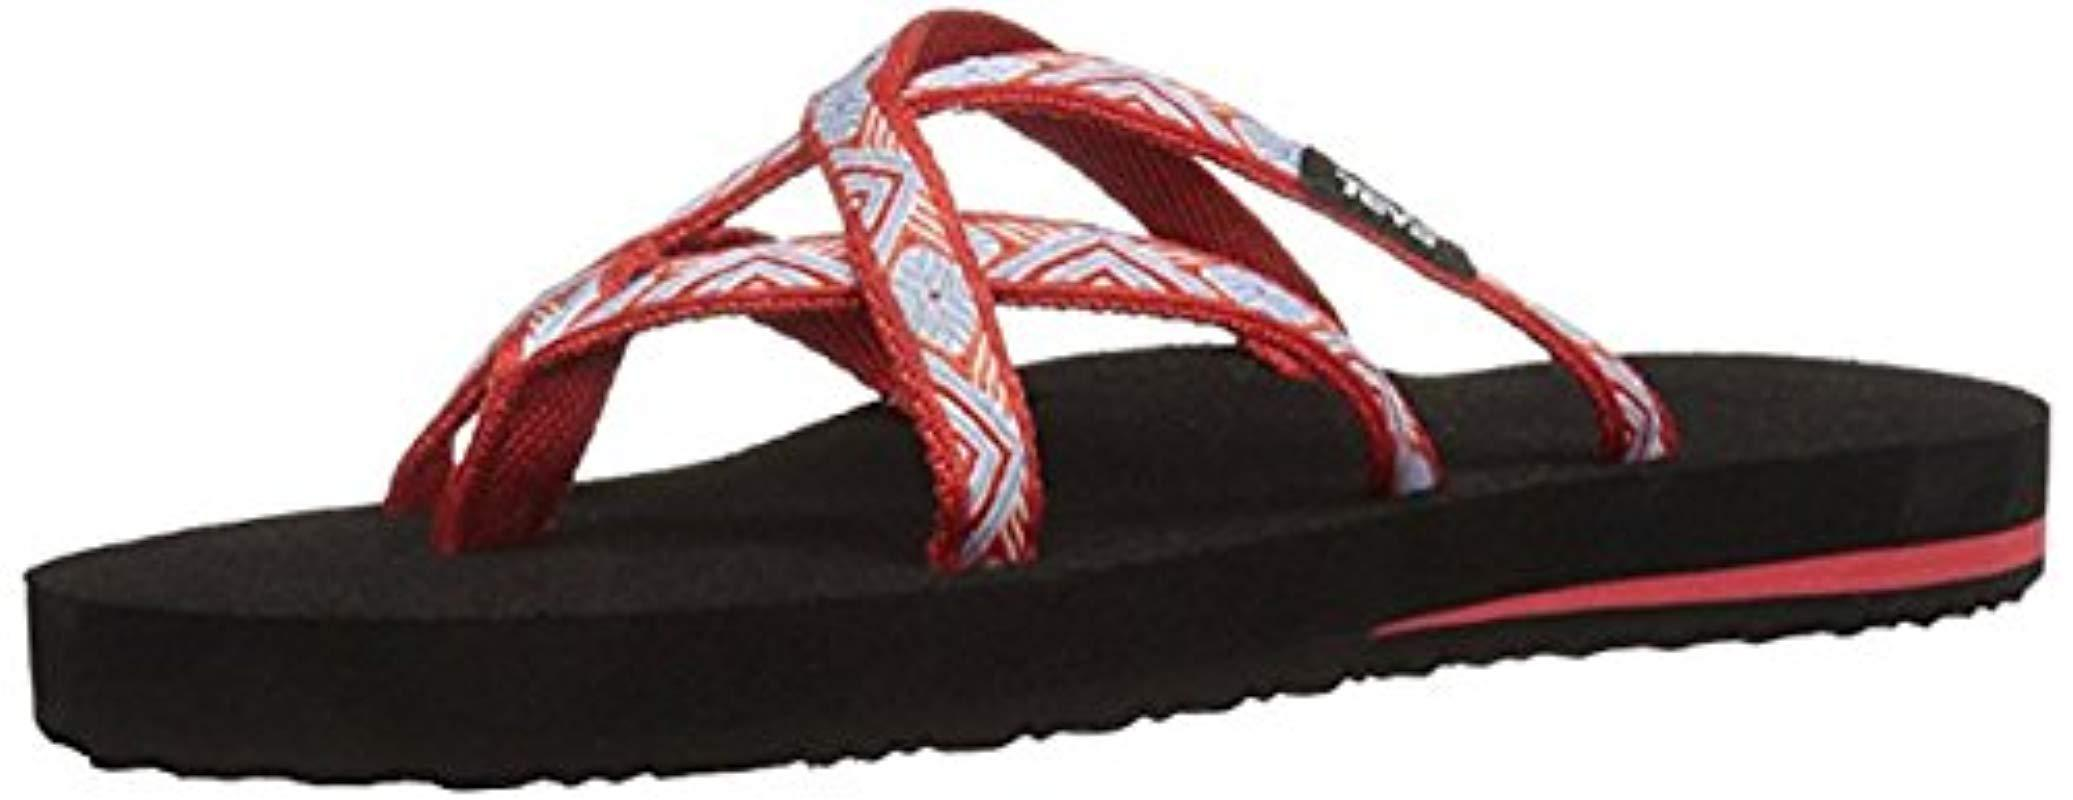 240a465e7 Teva   s Olowahu Flip Flops in Red - Save 13.63636363636364% - Lyst